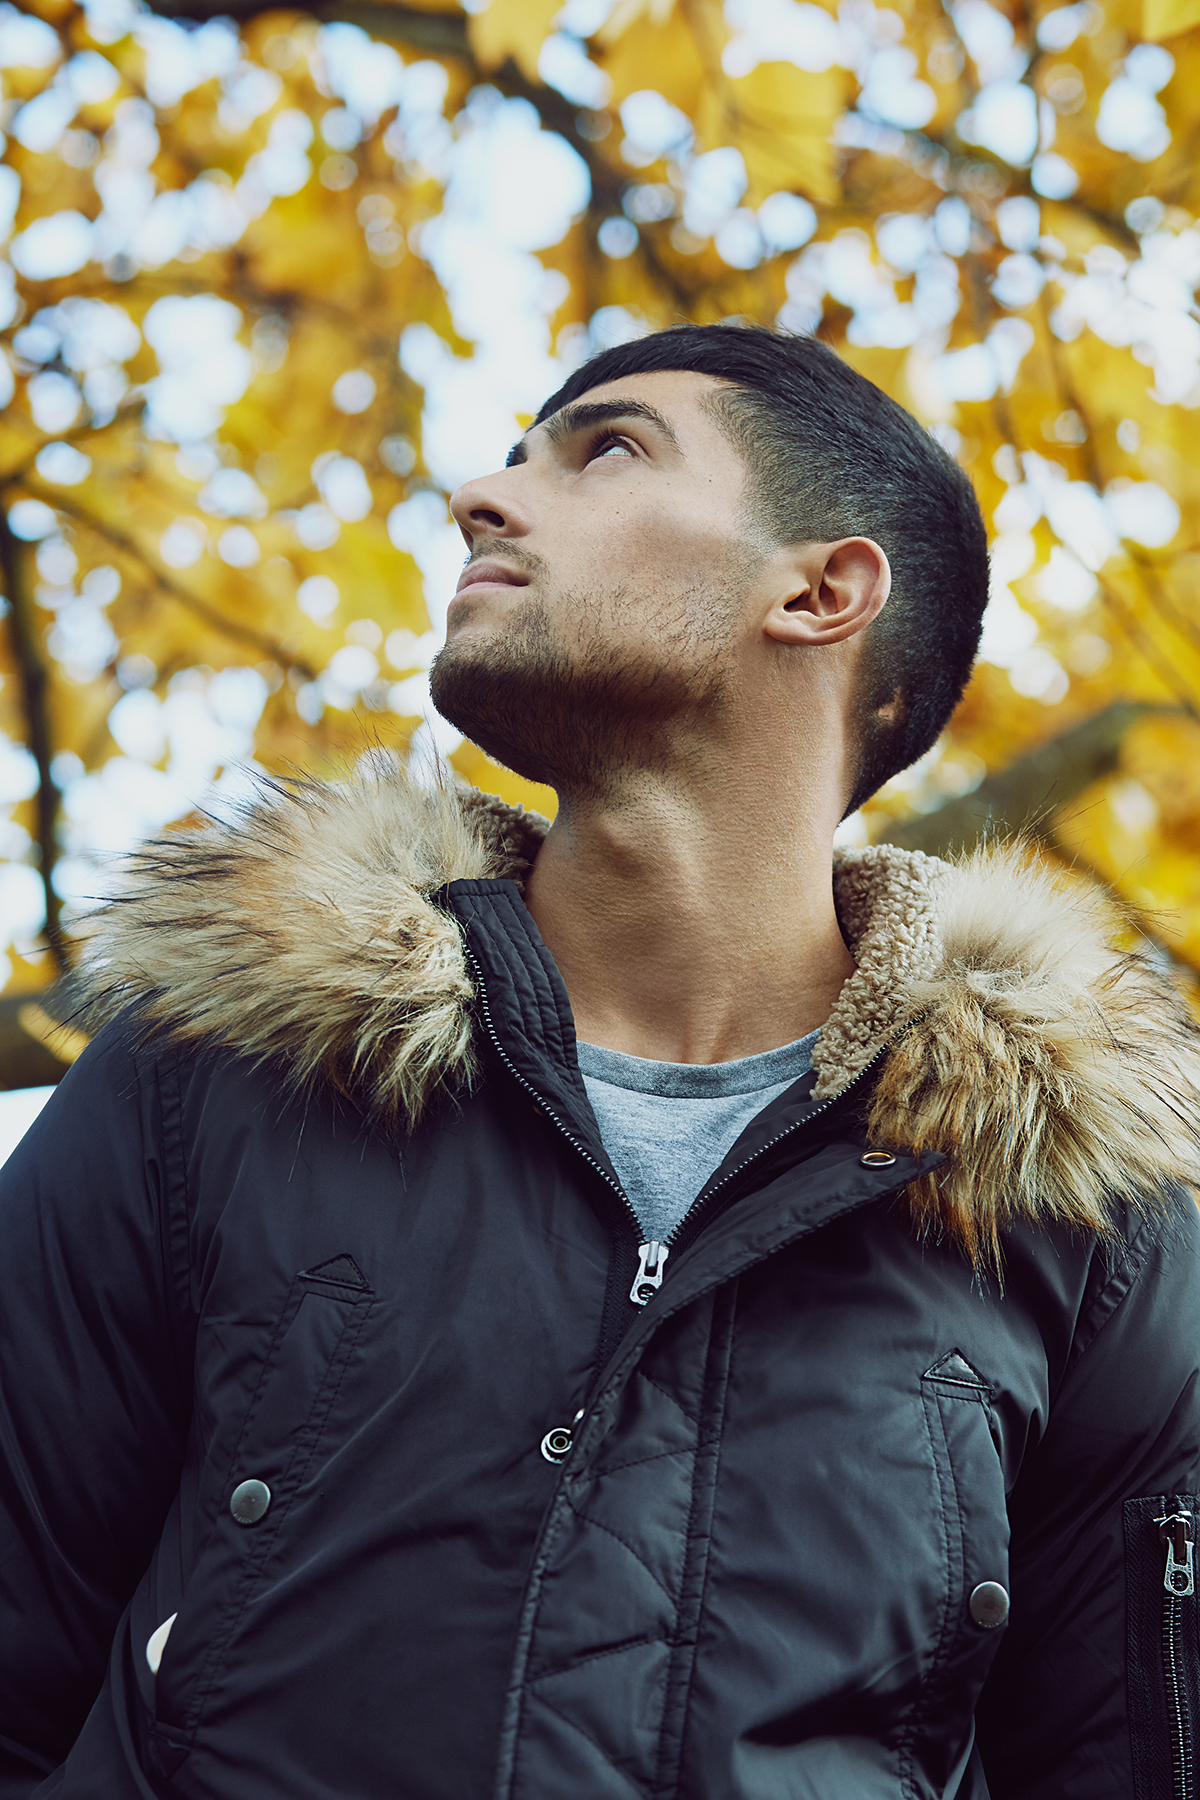 joey-london_autumnal-shoot_7202_lr